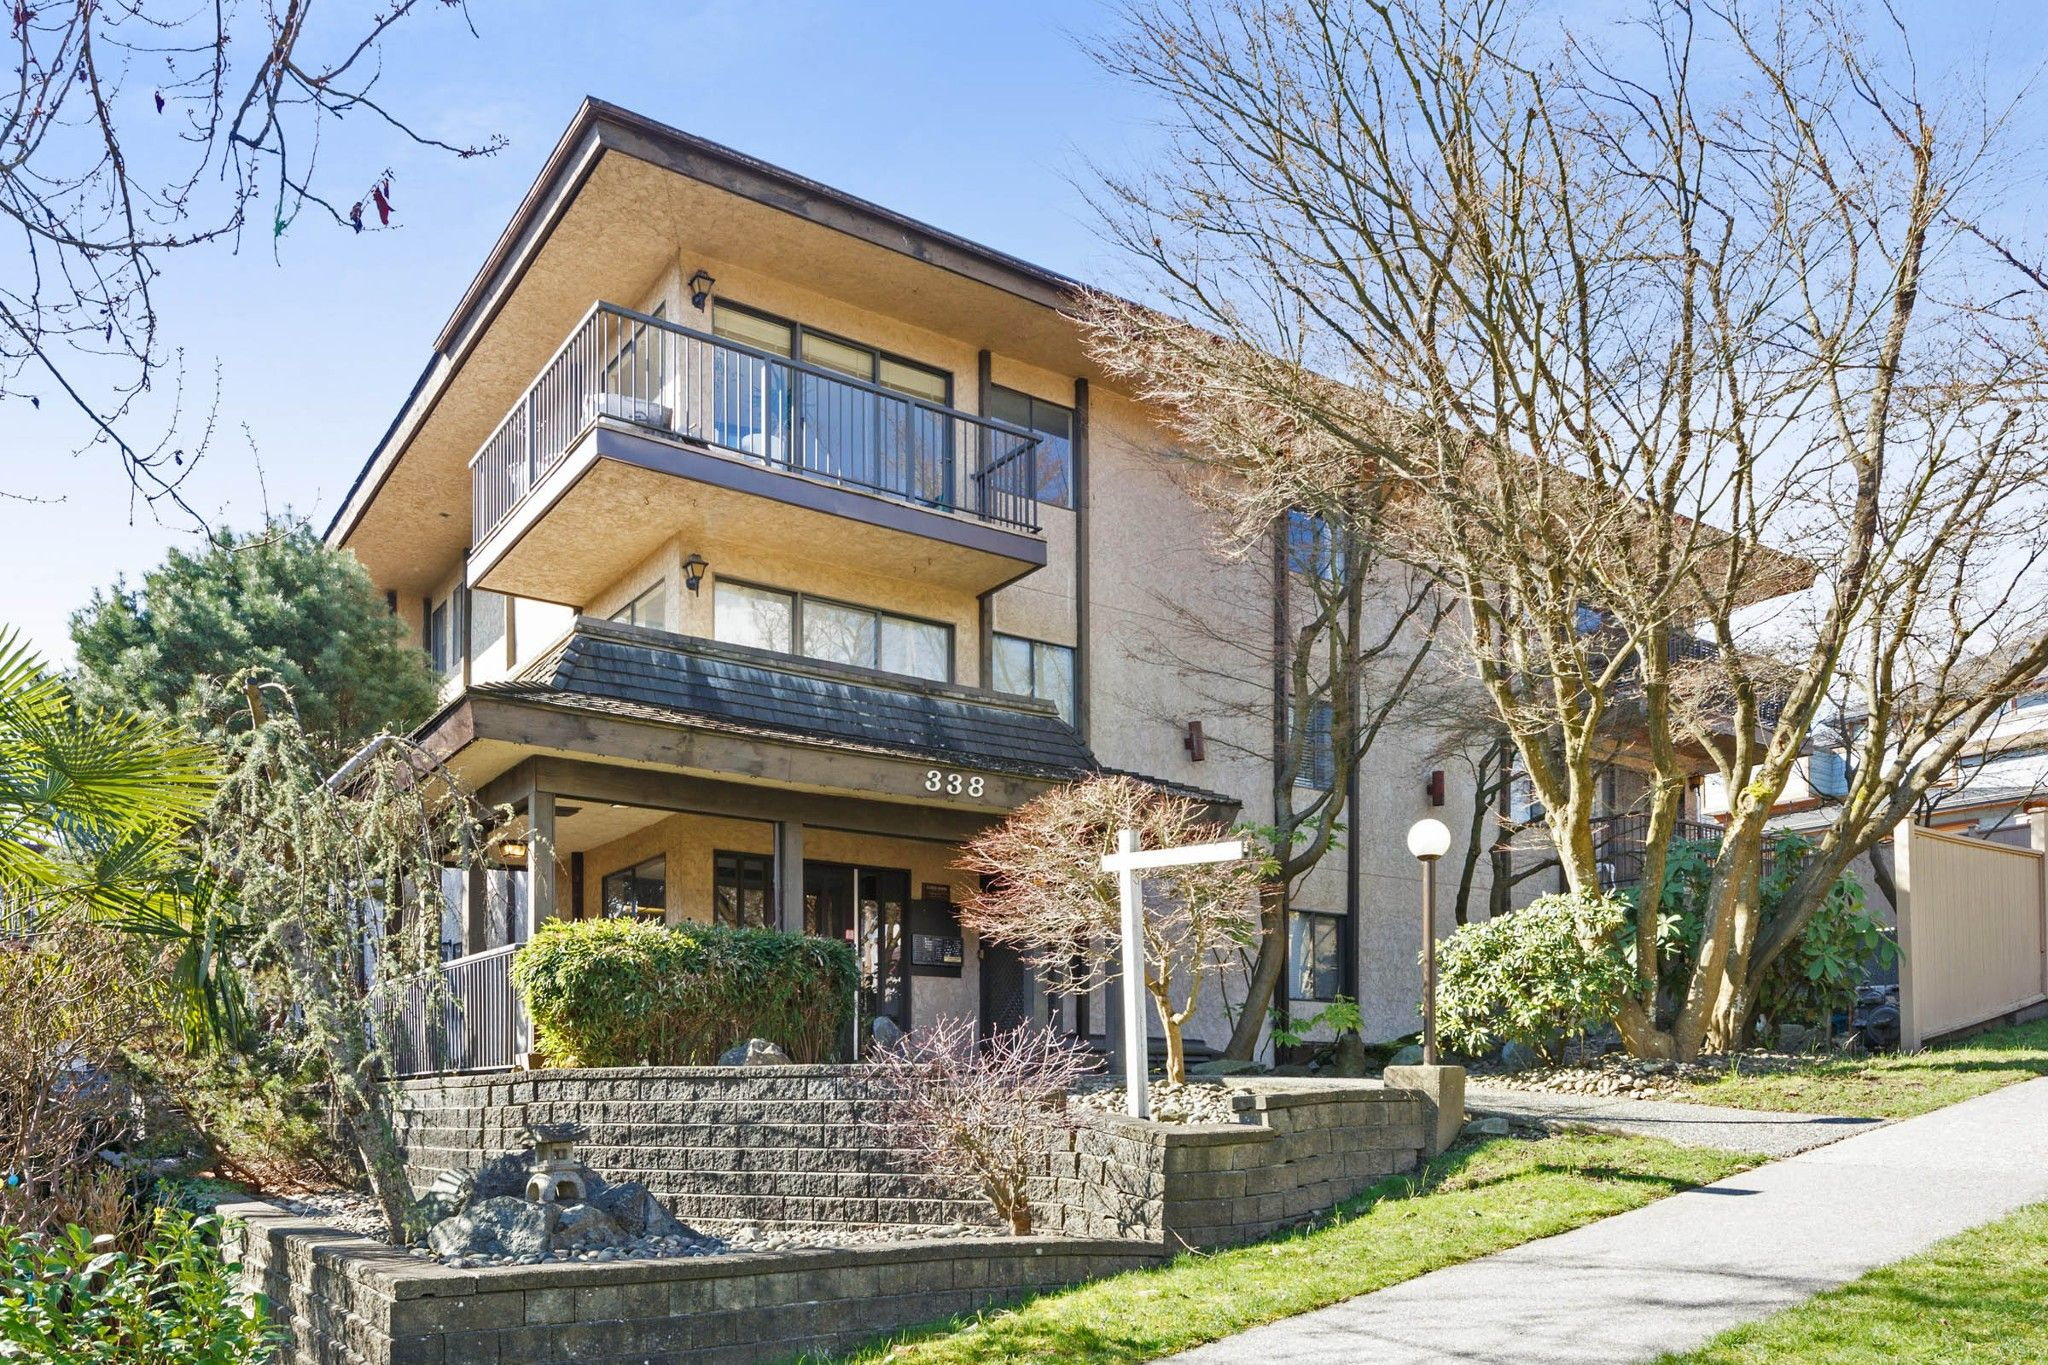 Main Photo: 103 338 WARD Street in New Westminster: Sapperton Condo for sale : MLS®# R2252745